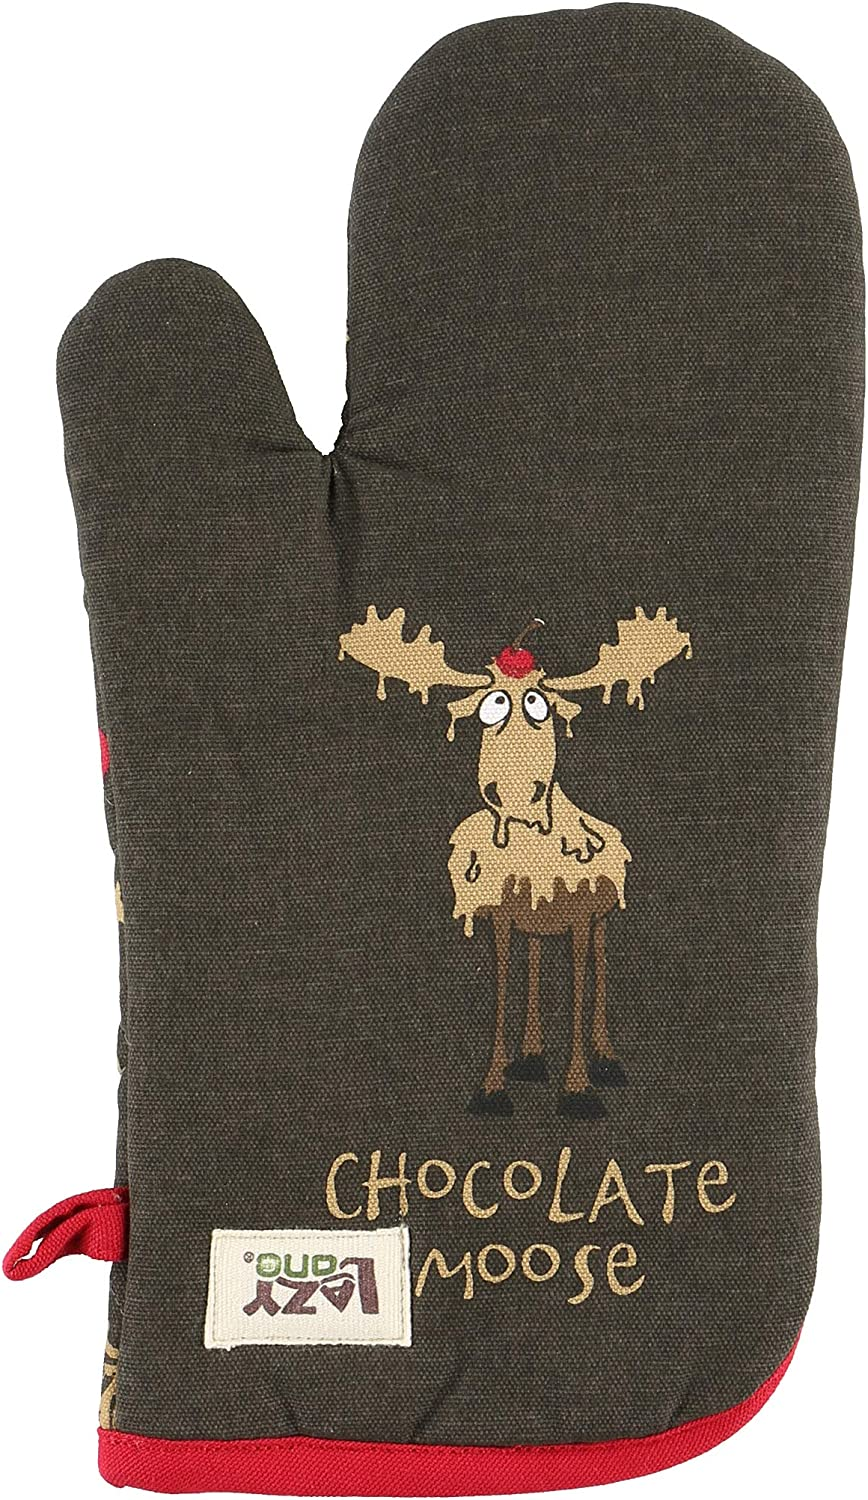 LazyOne Funny Oven Mitts, Cute Kitchen Accessories for Home (Chocolate Moose, ONE Size)